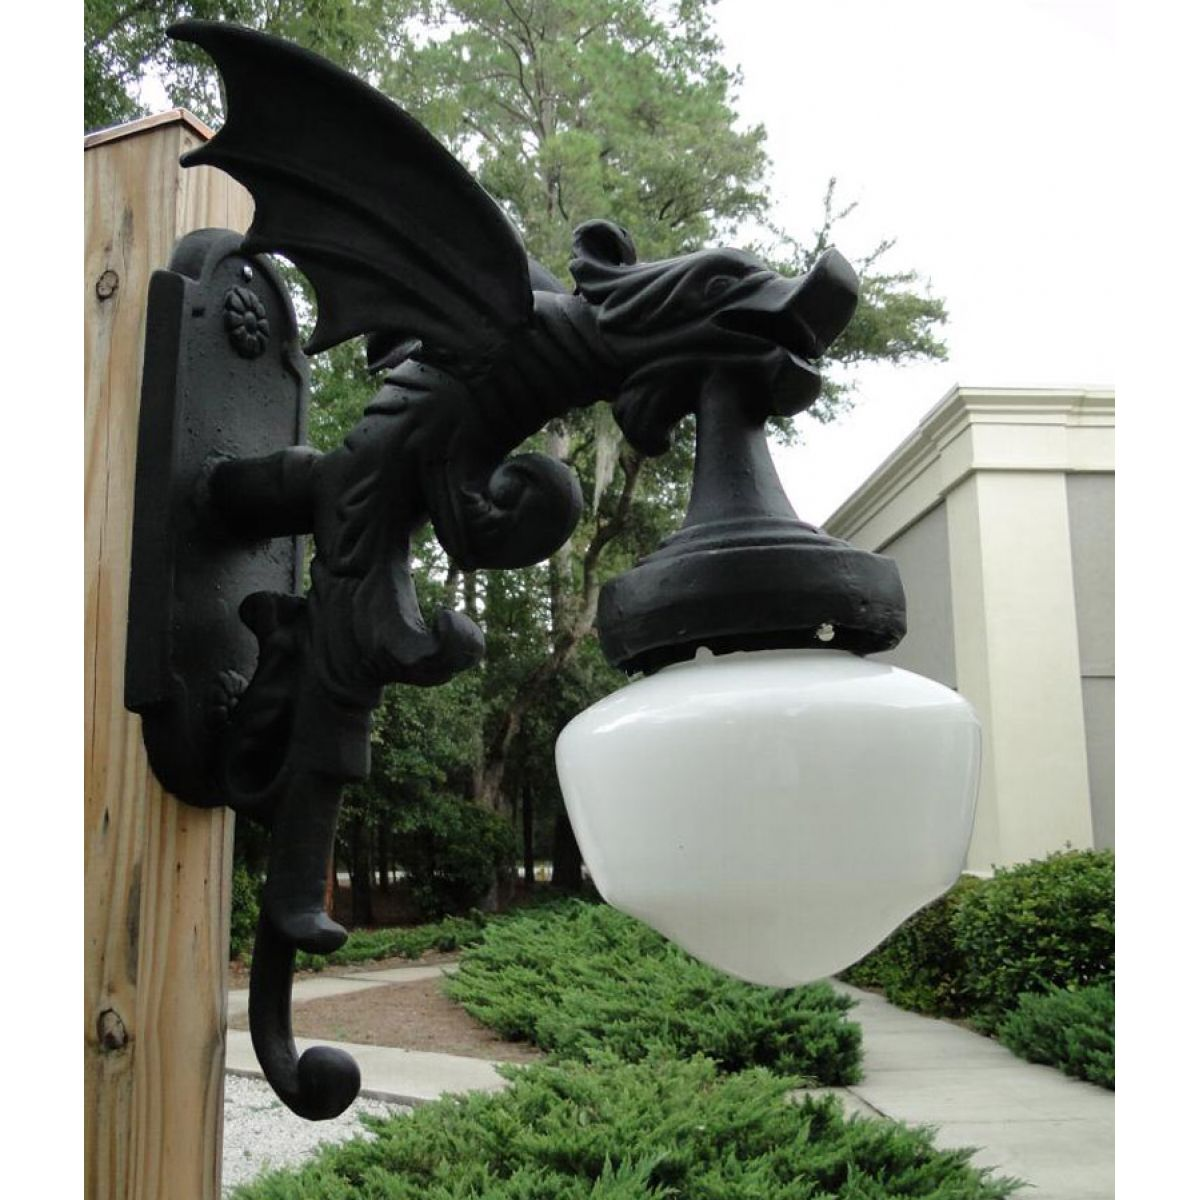 Outdoor wall light sconce fixture antique style gargoyle dragon outdoor wall light sconce fixture antique style gargoyle dragon wings vintage mozeypictures Choice Image